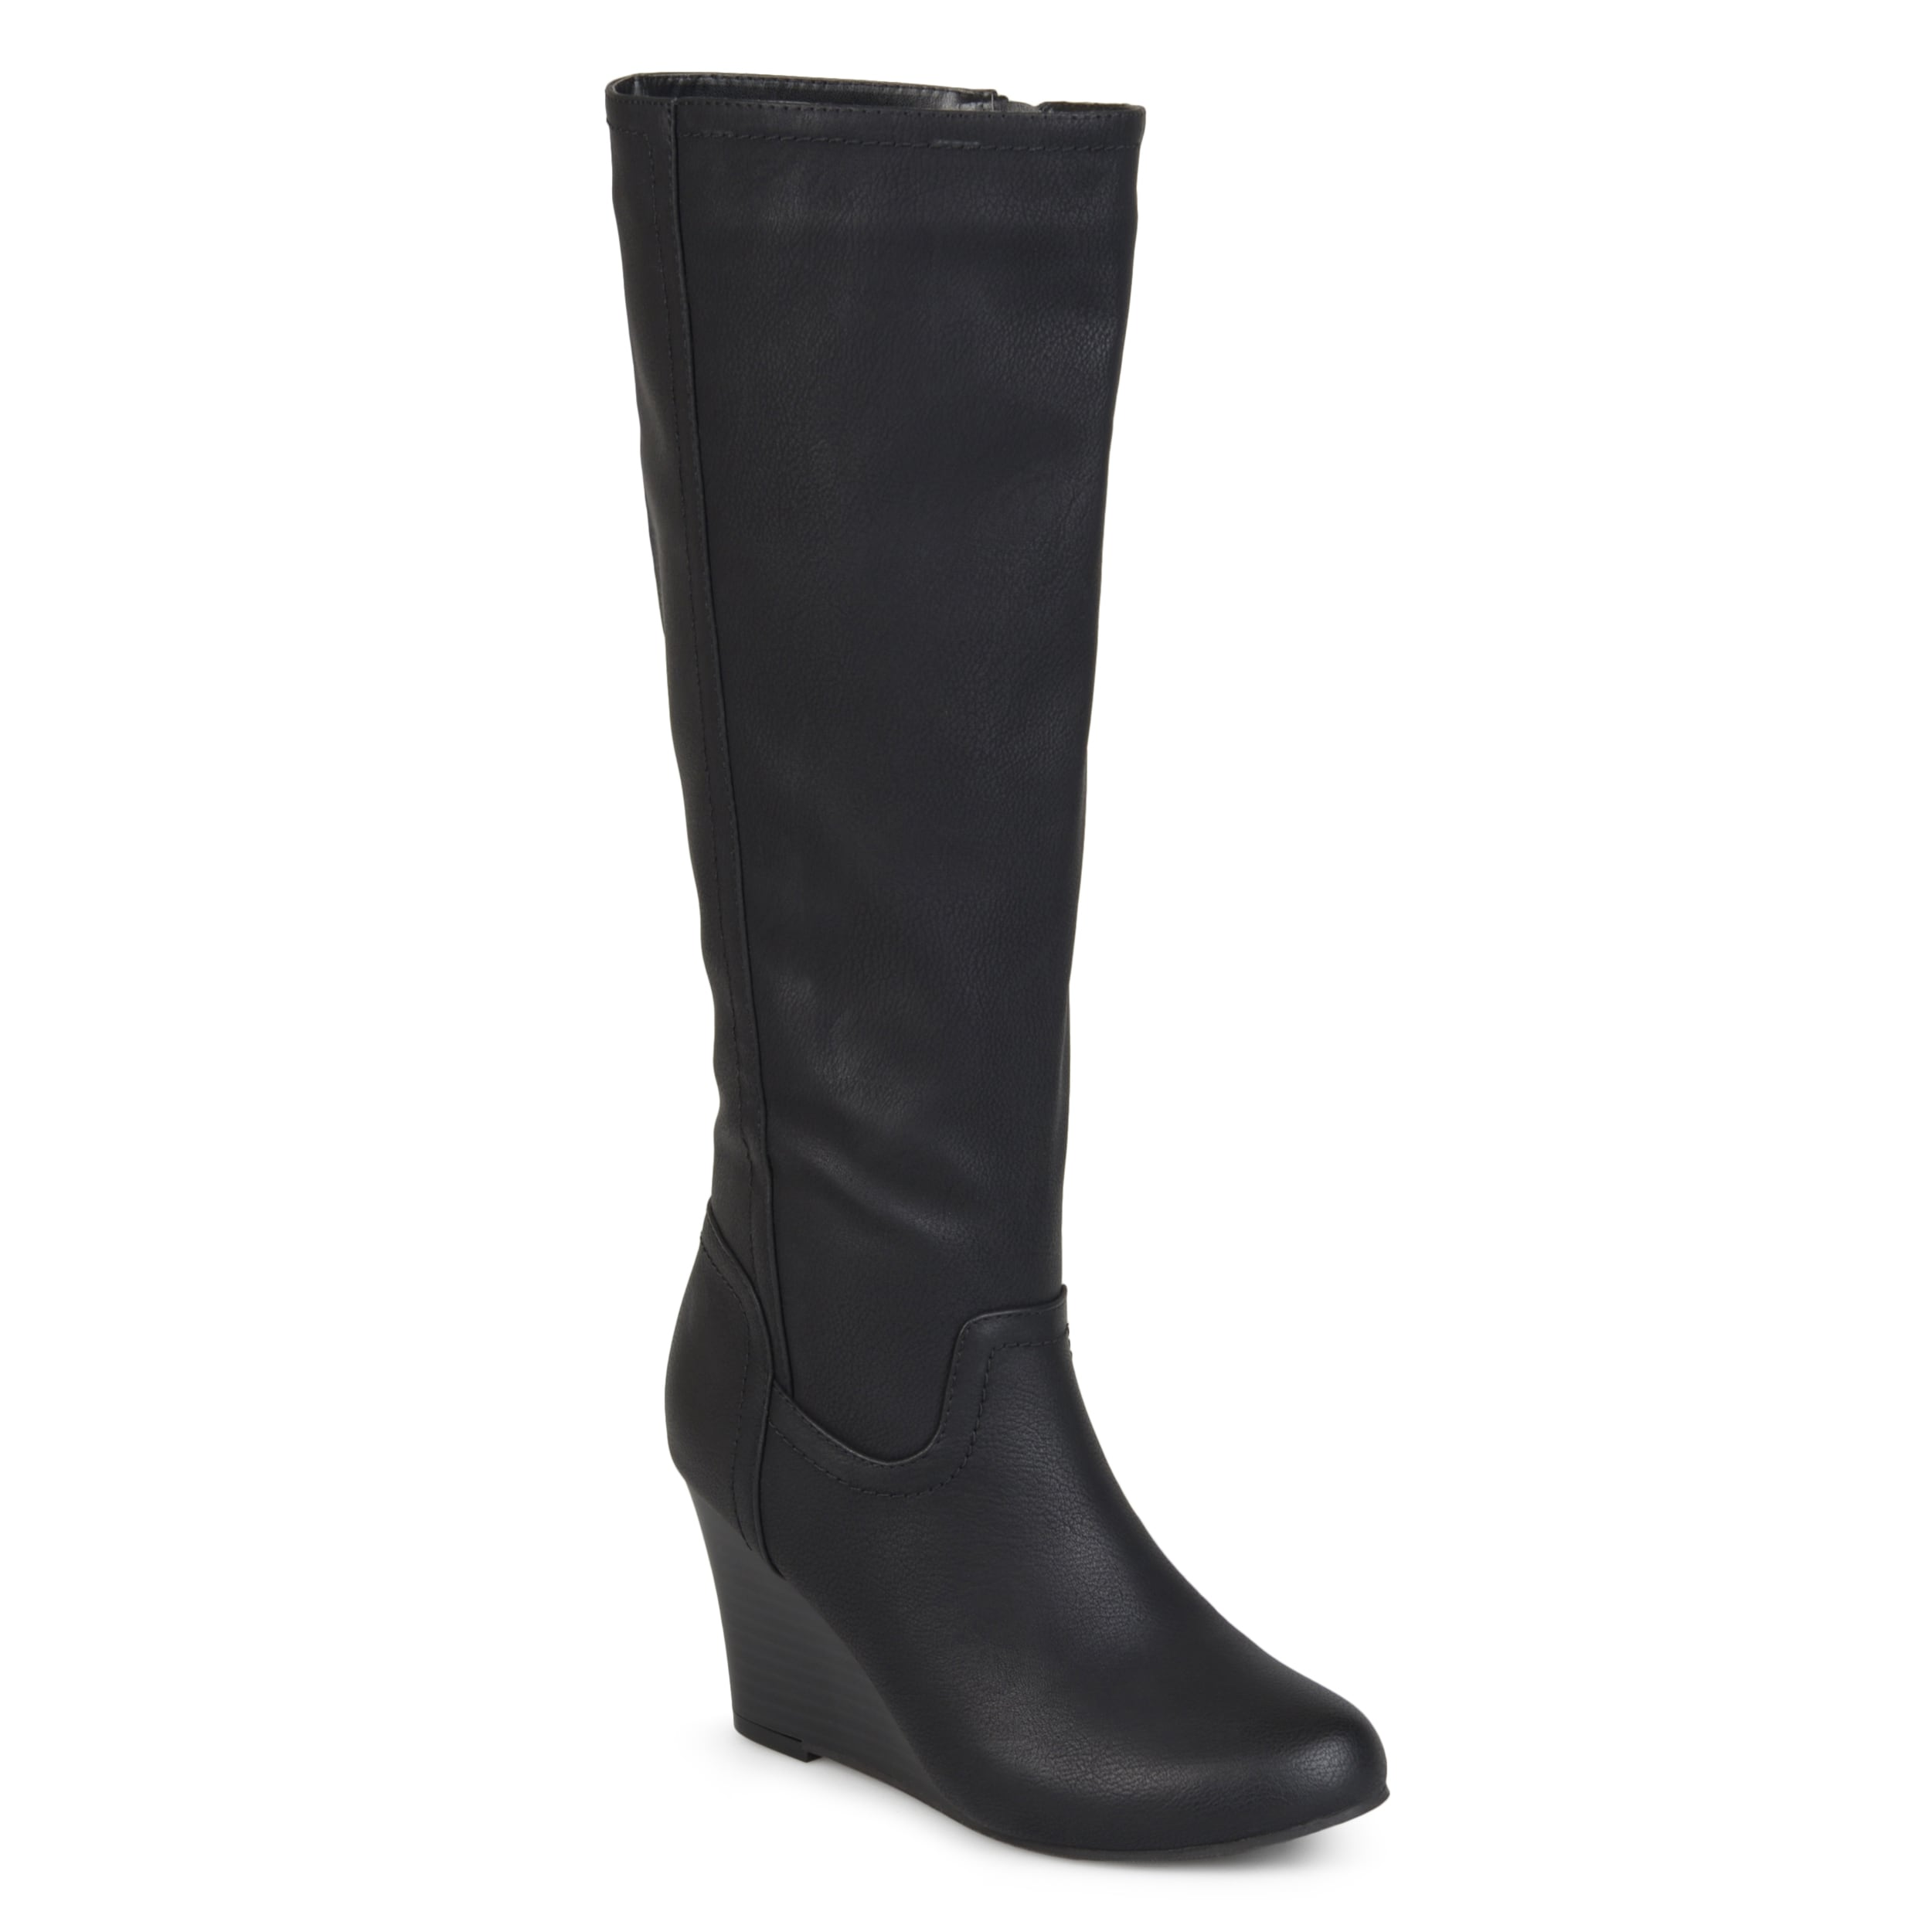 f7489b75d2b2 Journee Collection Women's 'Langly' Regular and Wide Calf Round Toe  Mid-calf Wedge Boots